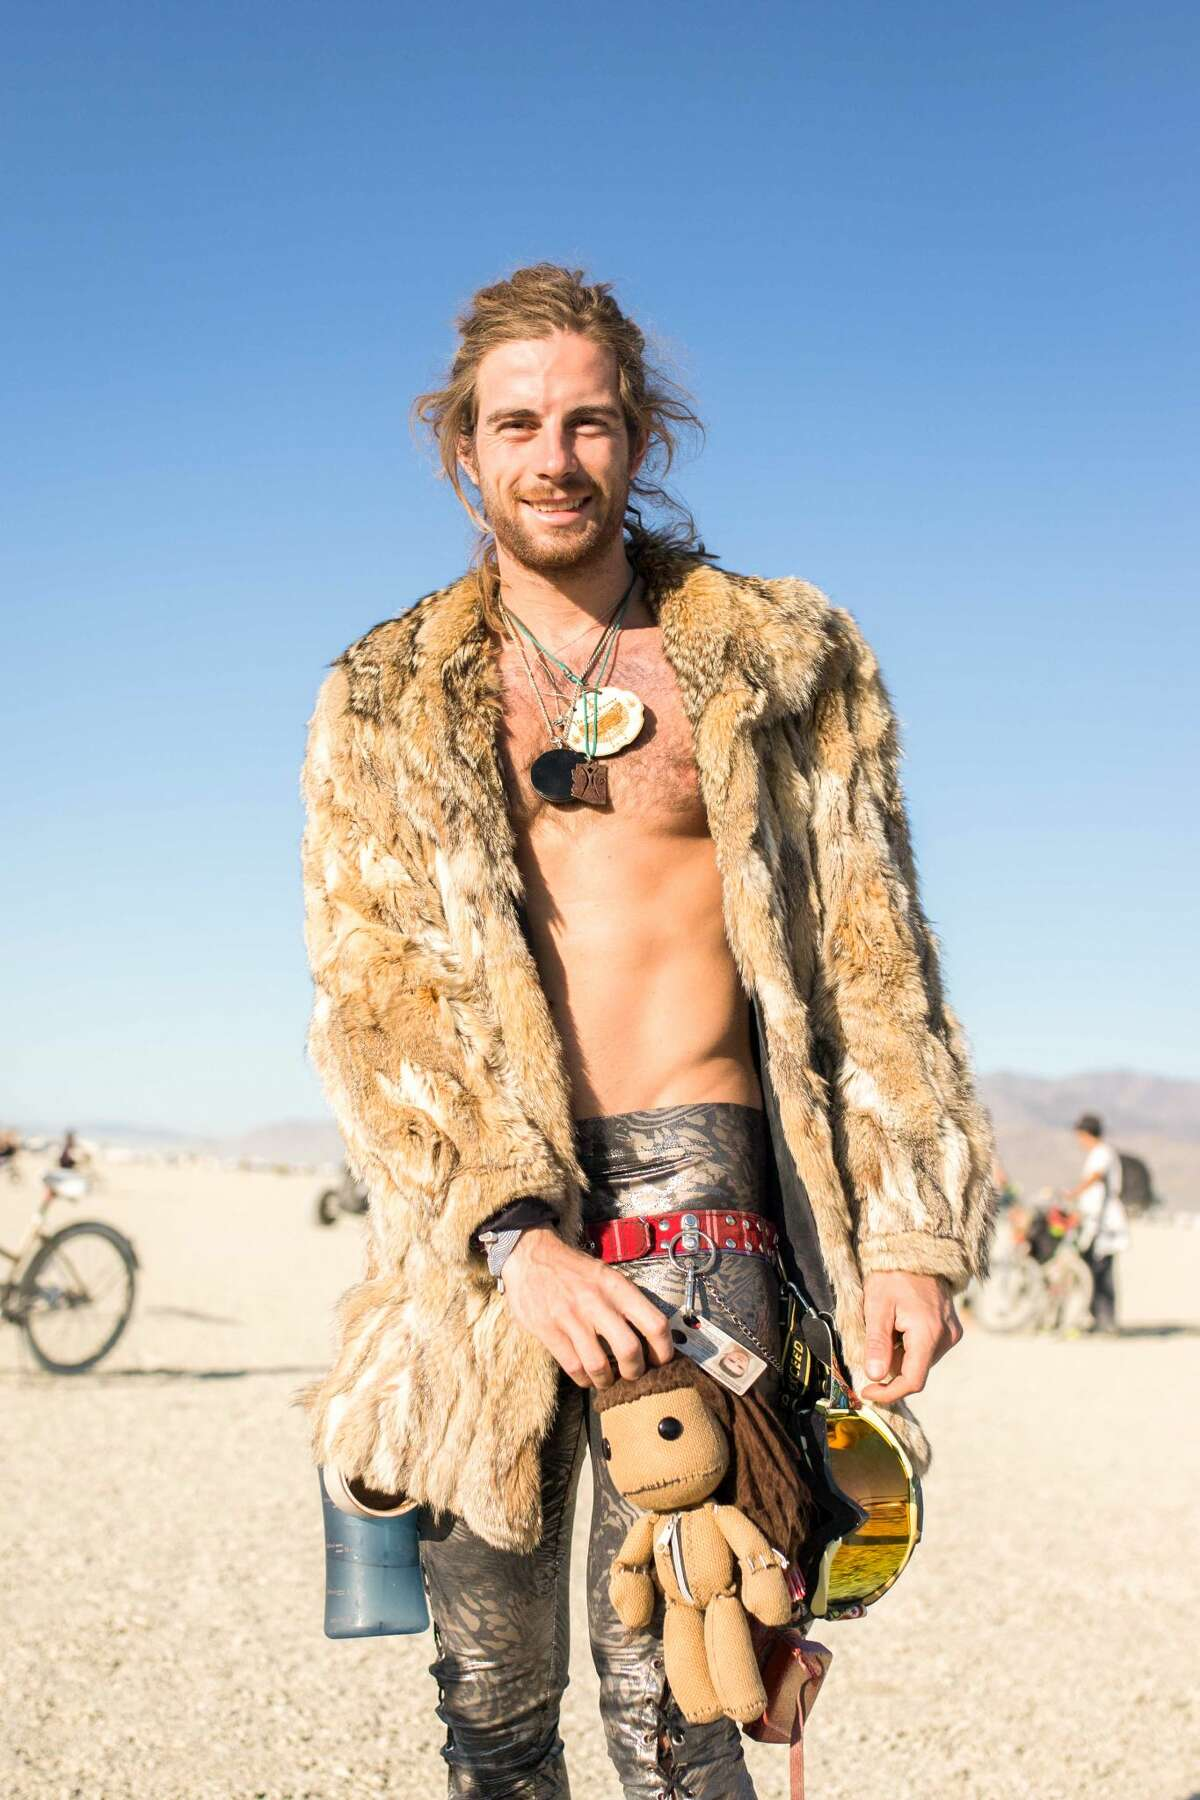 Stefan Flus from Germany at Burning Man 2019.